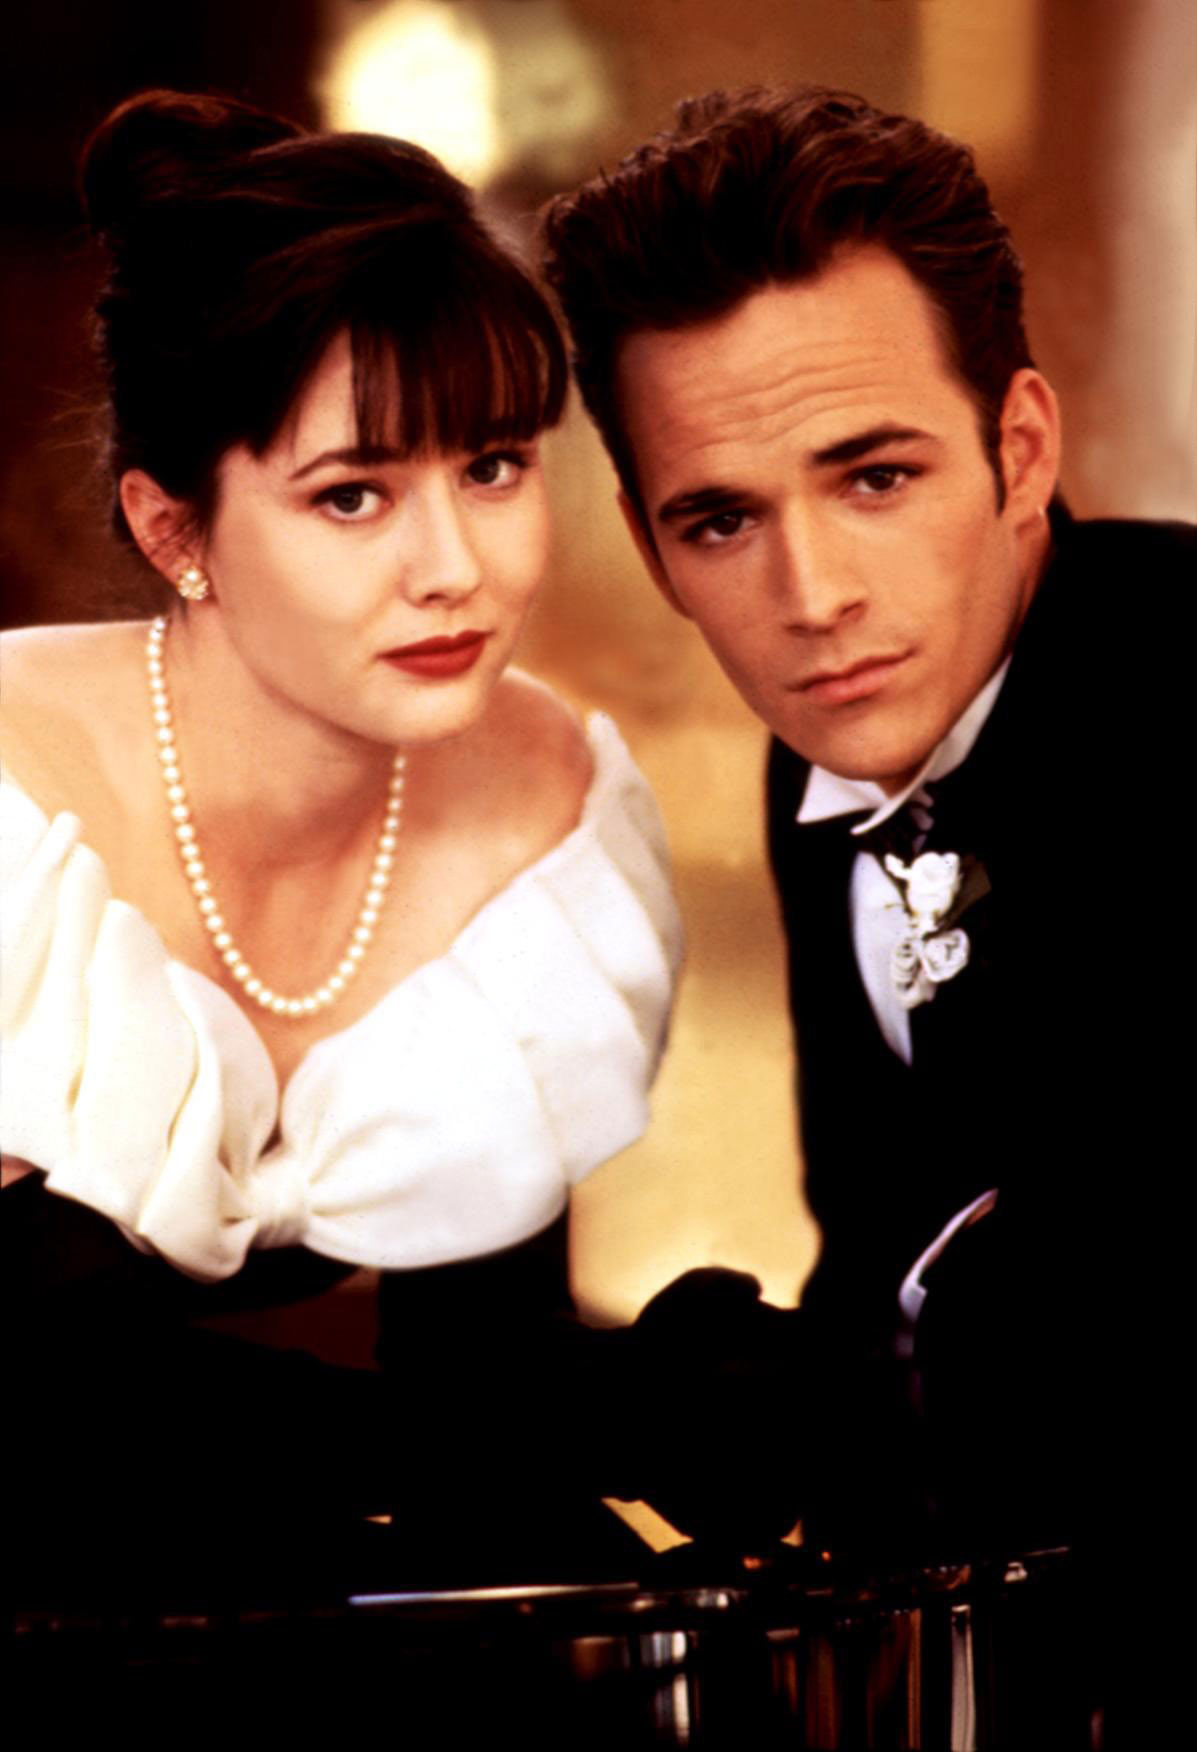 BEVERLY HILLS, 90210, 1990-2000, Shannen Doherty, Luke Perry, 1990-94